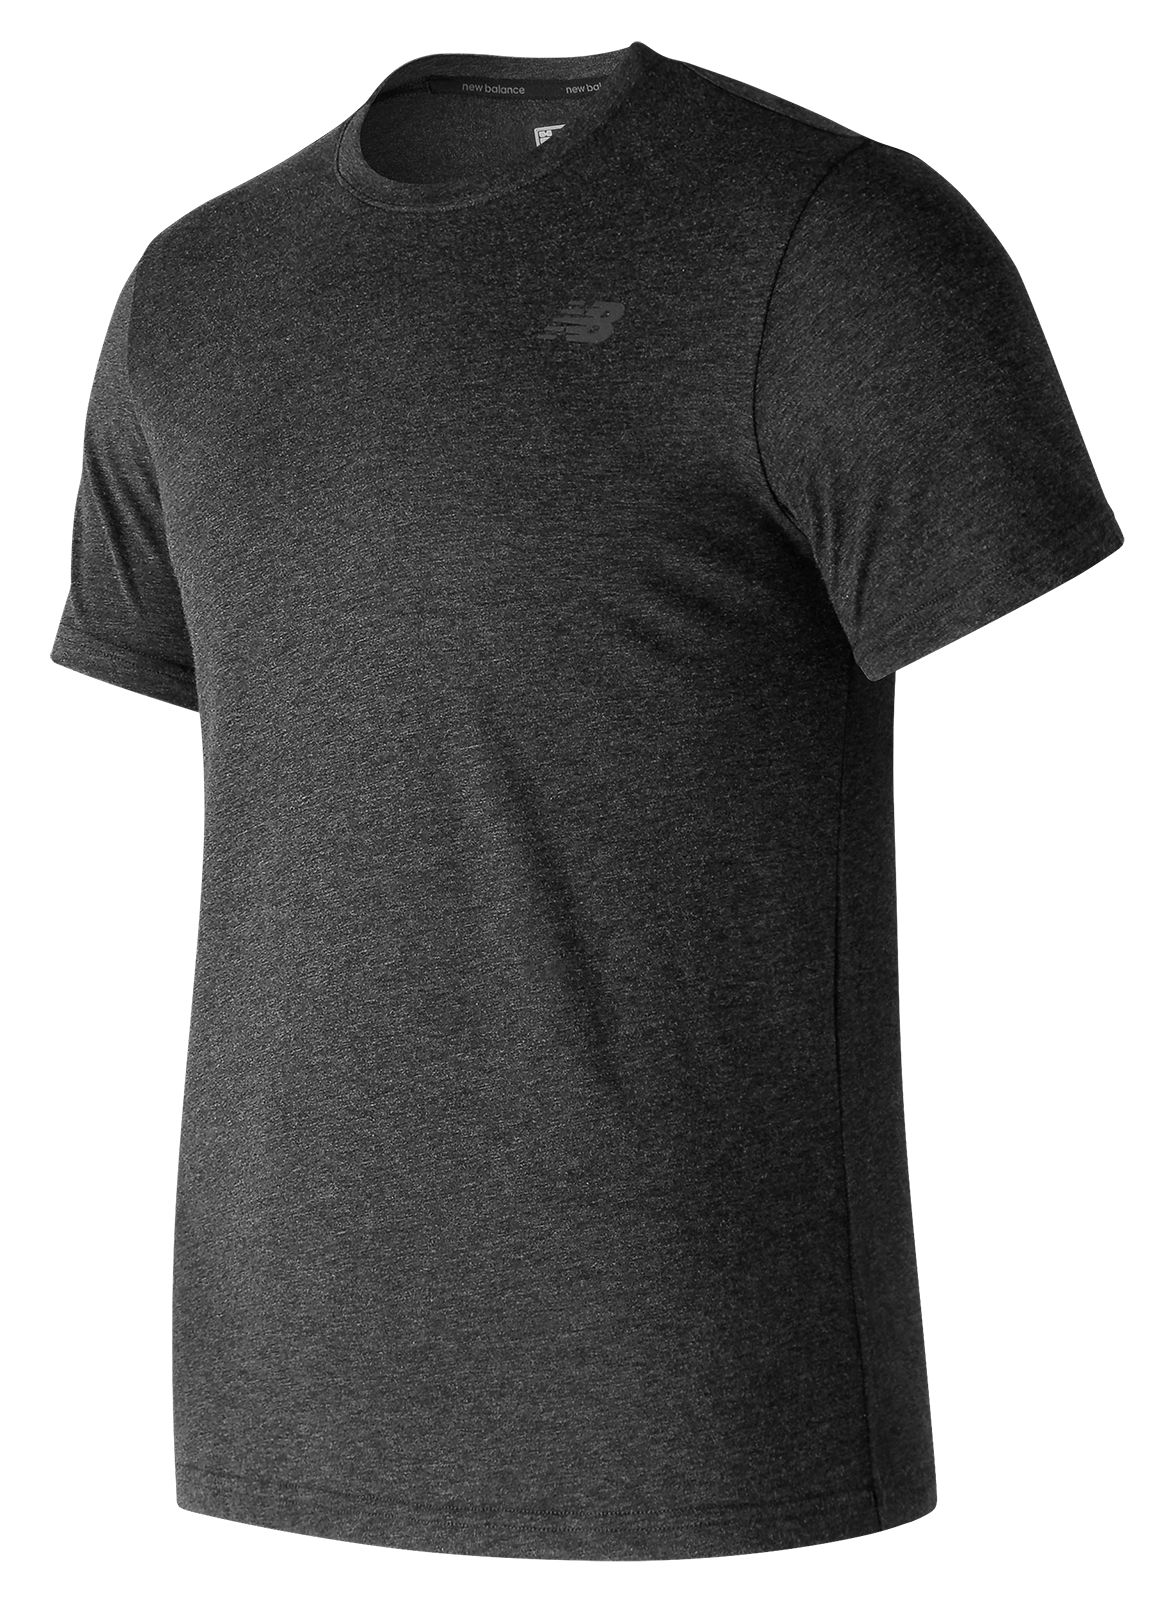 NB Heather Tech Short Sleeve, Black with Heather Charcoal